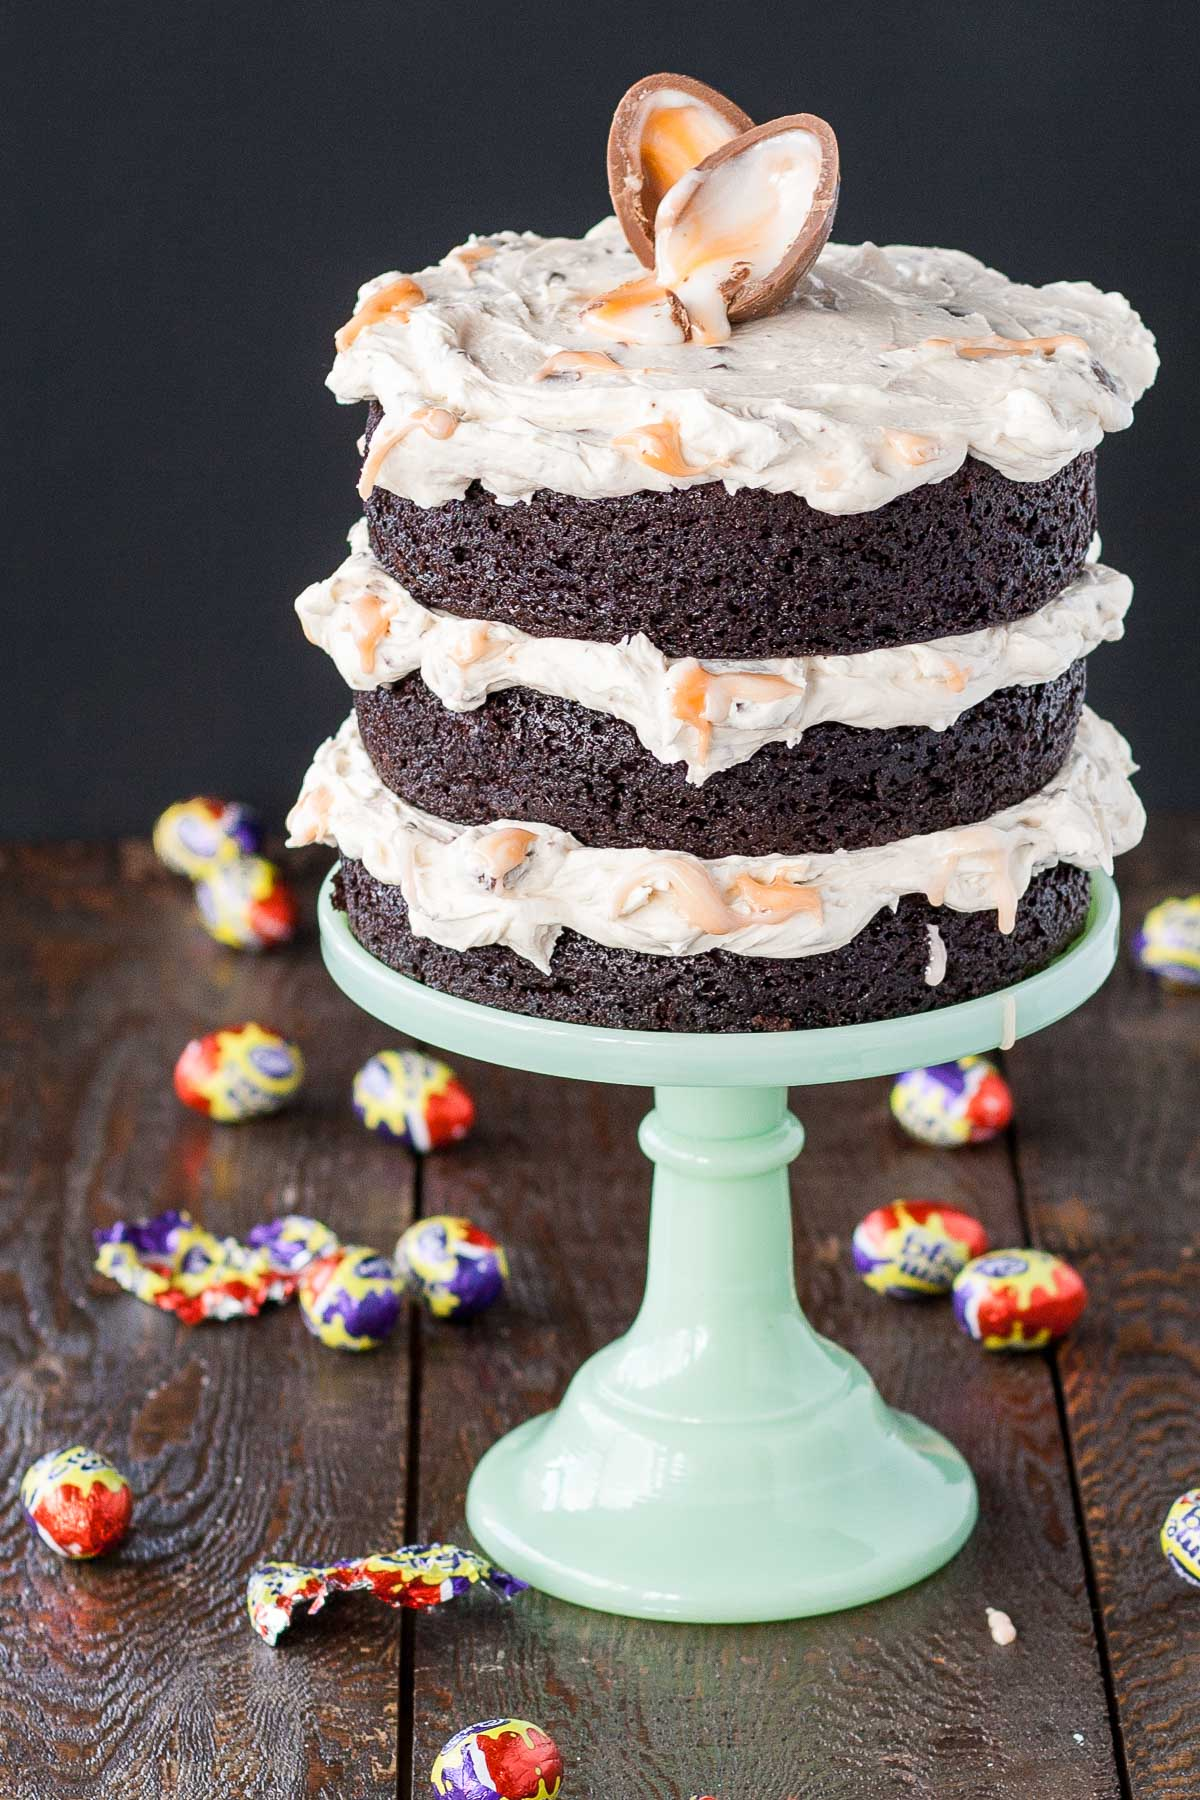 This Cadbury Creme Egg Cake is the perfect cake for your Easter celebrations. A rich chocolate cake with a Cadbury Creme Egg frosting! | livforcake.com